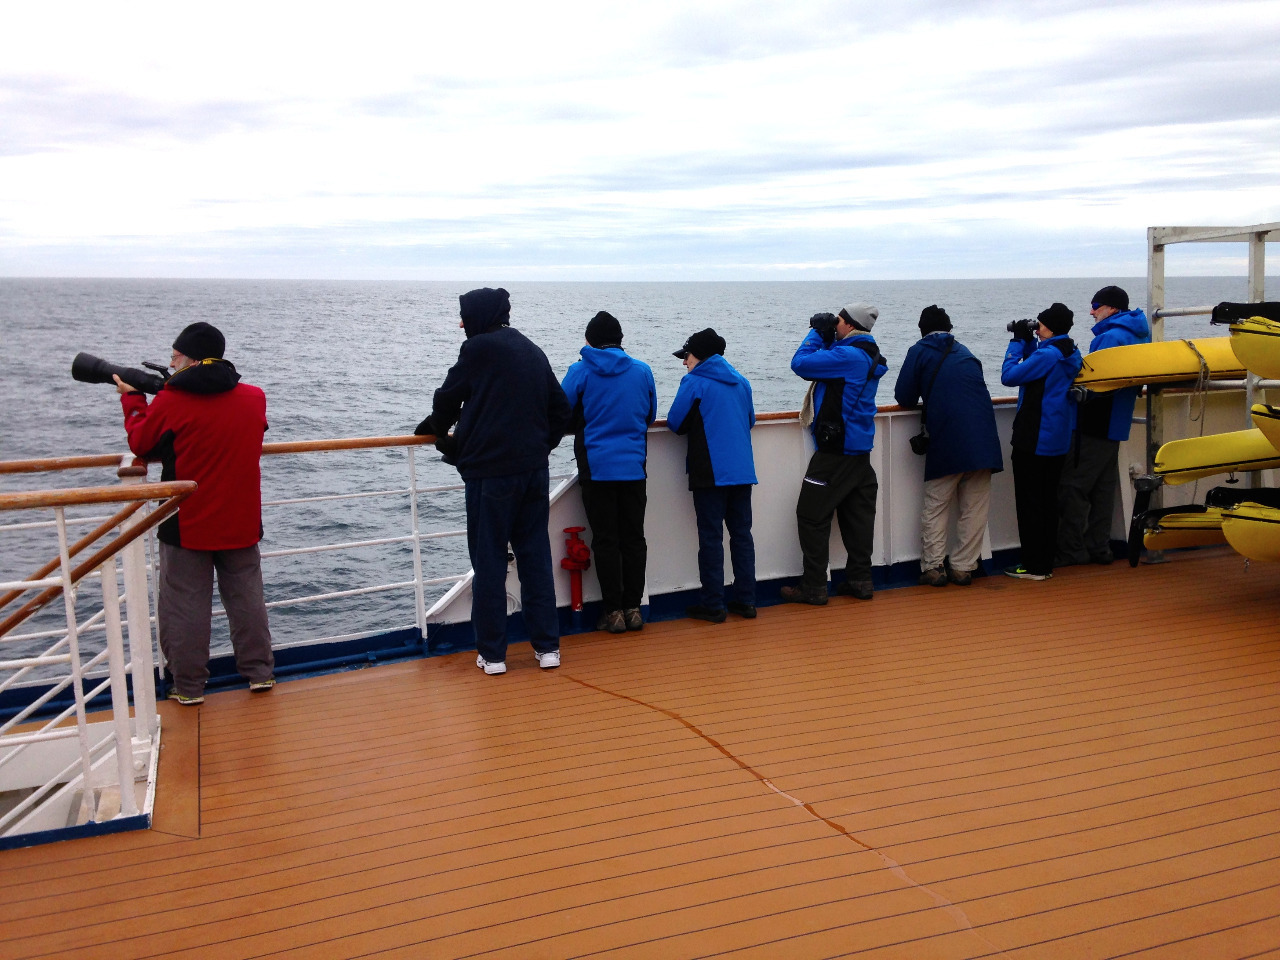 Typical At-Sea whale and bird watching